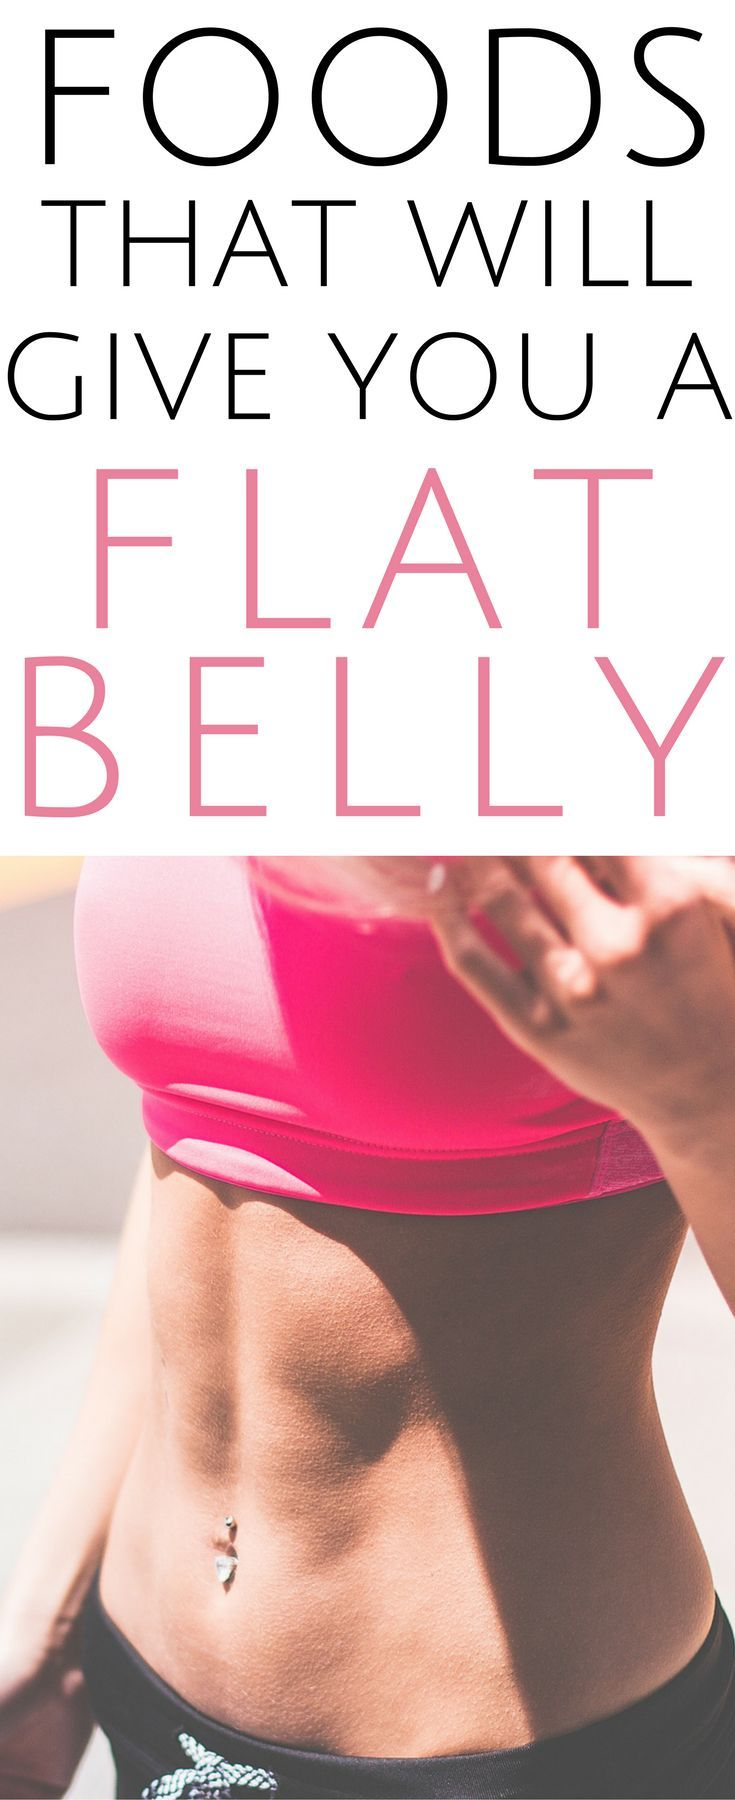 Top 10 flat belly foods for a healthy living!